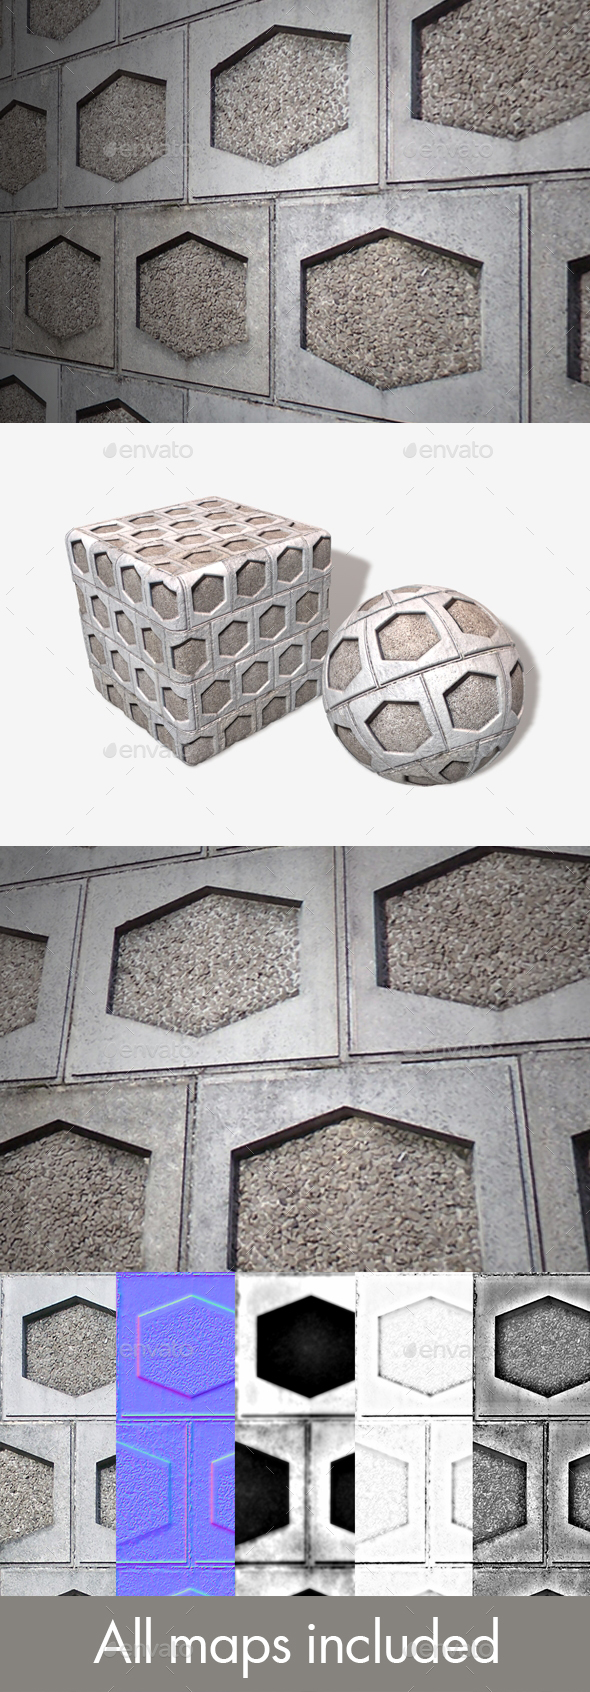 Hexagon Tile Industrial Wall Seamless Texture - 3DOcean Item for Sale